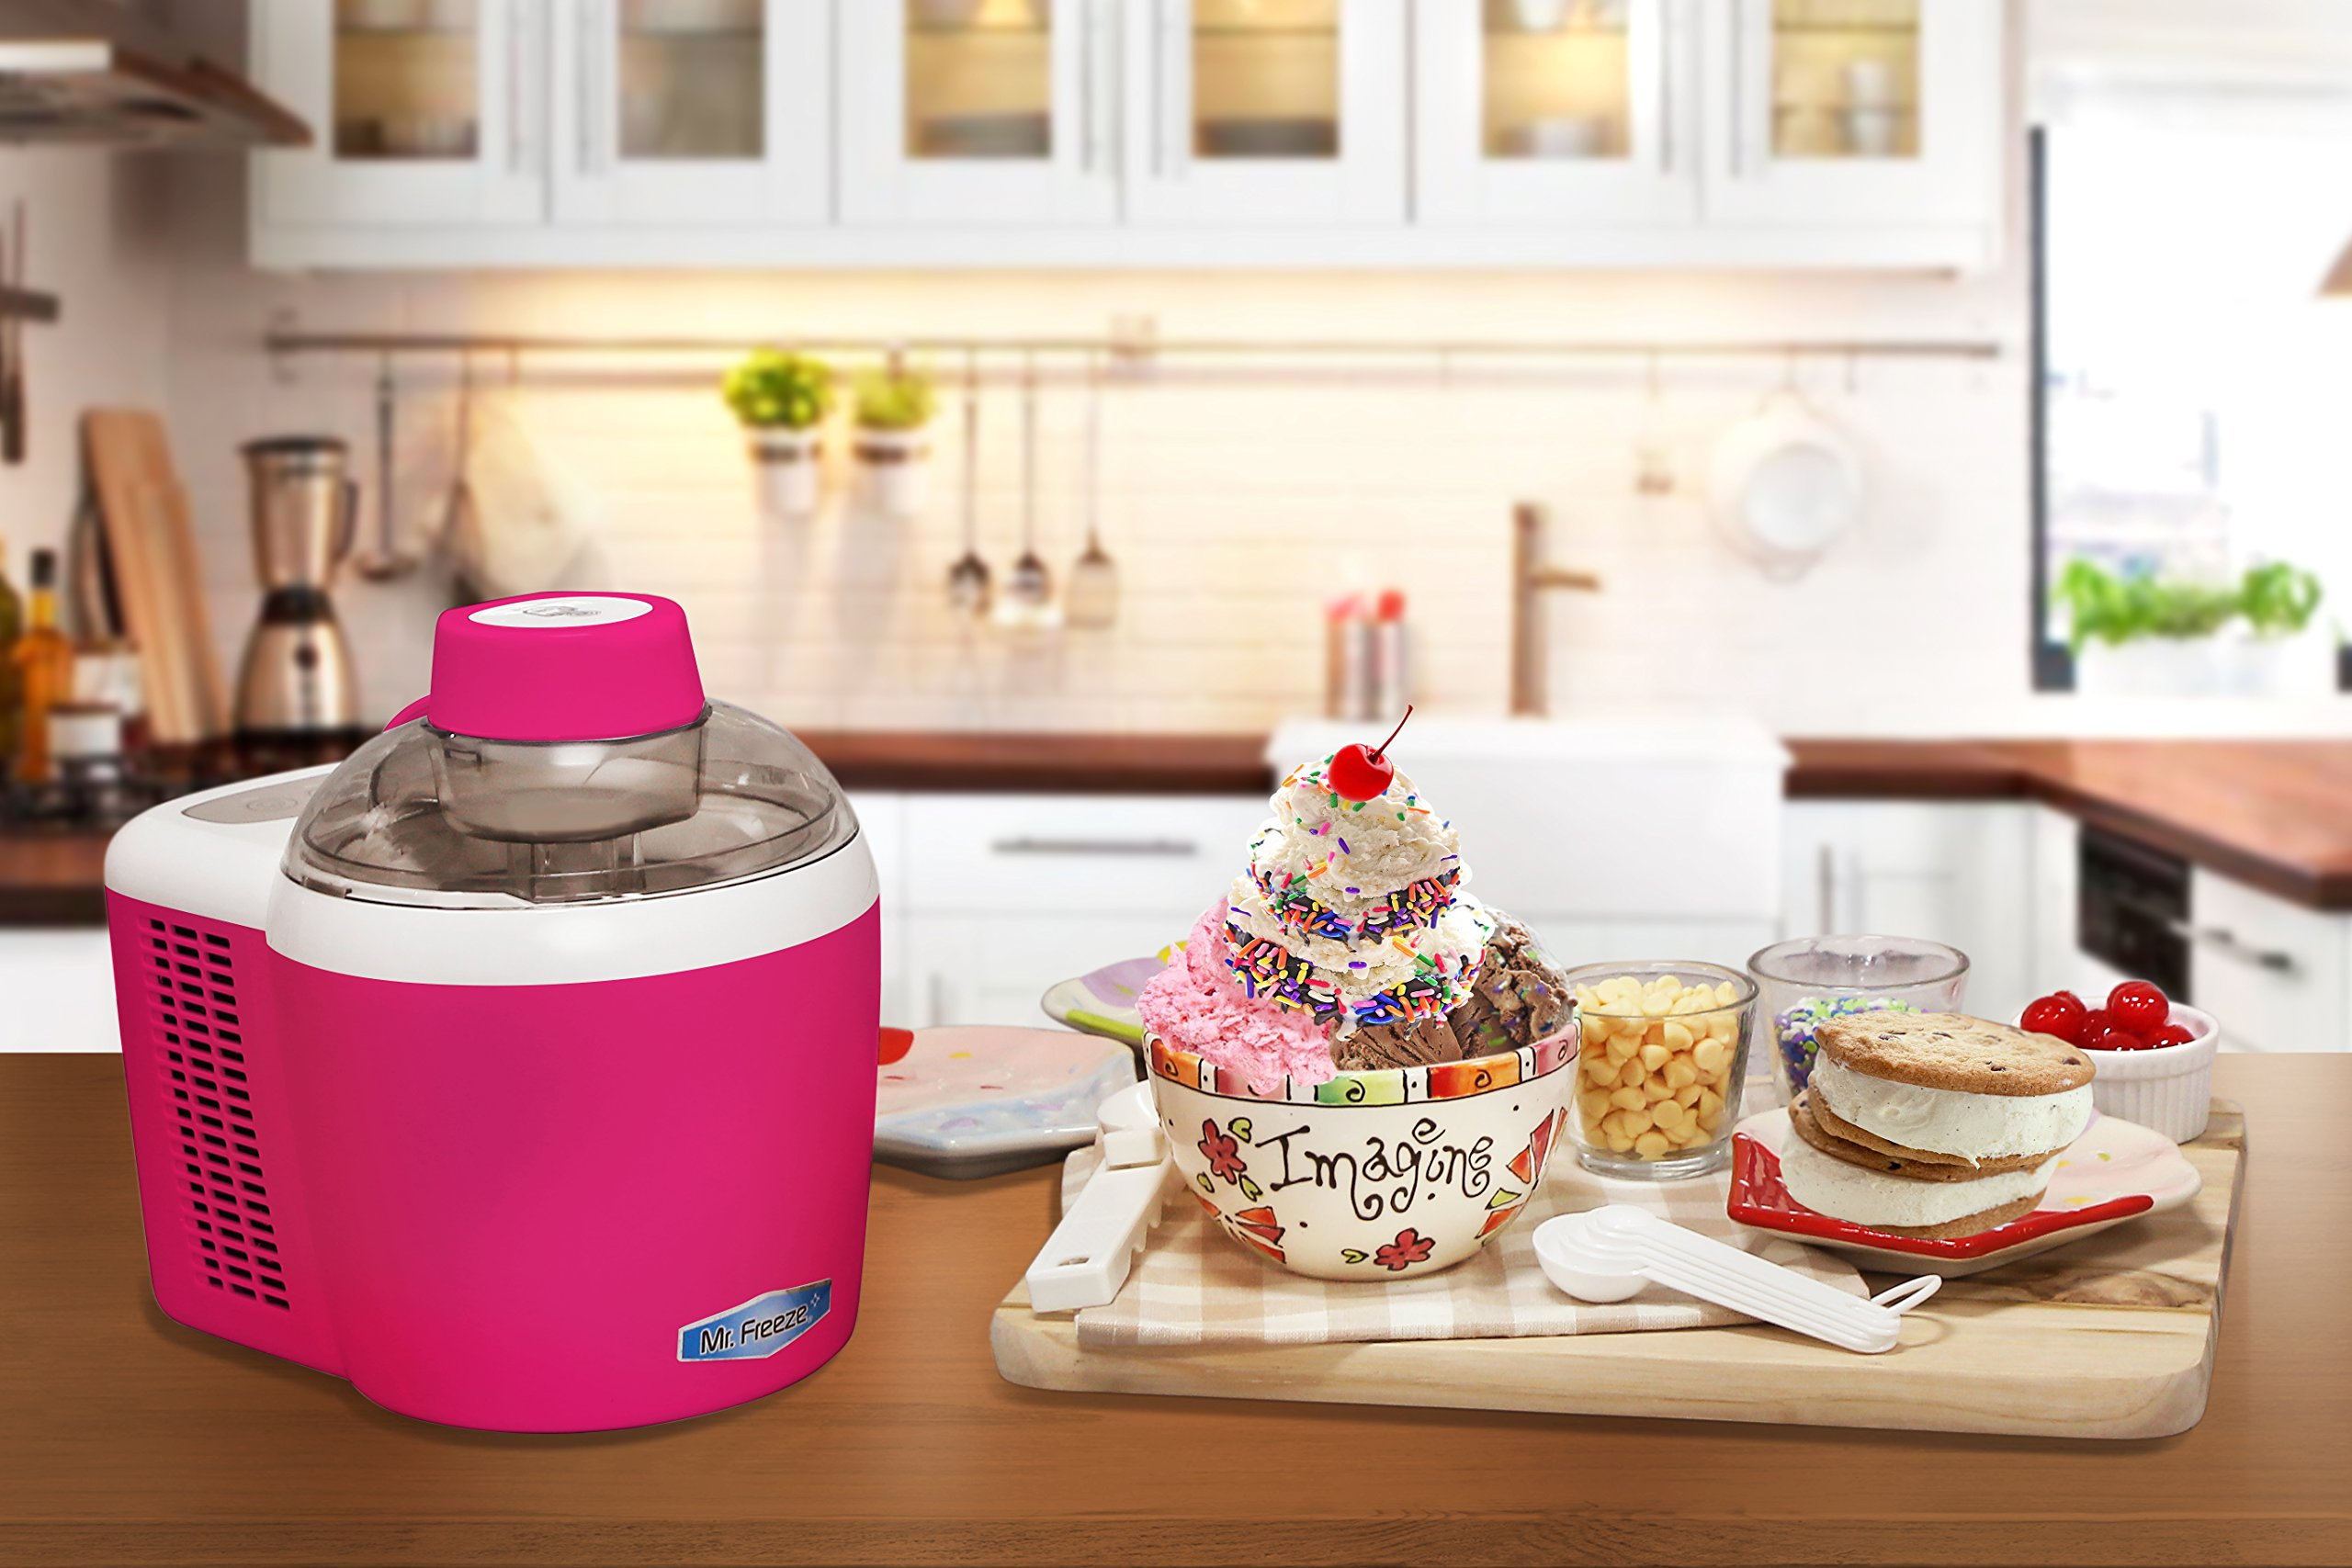 Mr. Freeze EIM-700BR Maxi-Matic 1.5 Pint Thermoelectric Ice Cream Maker, Berry by Mr. Freeze (Image #7)